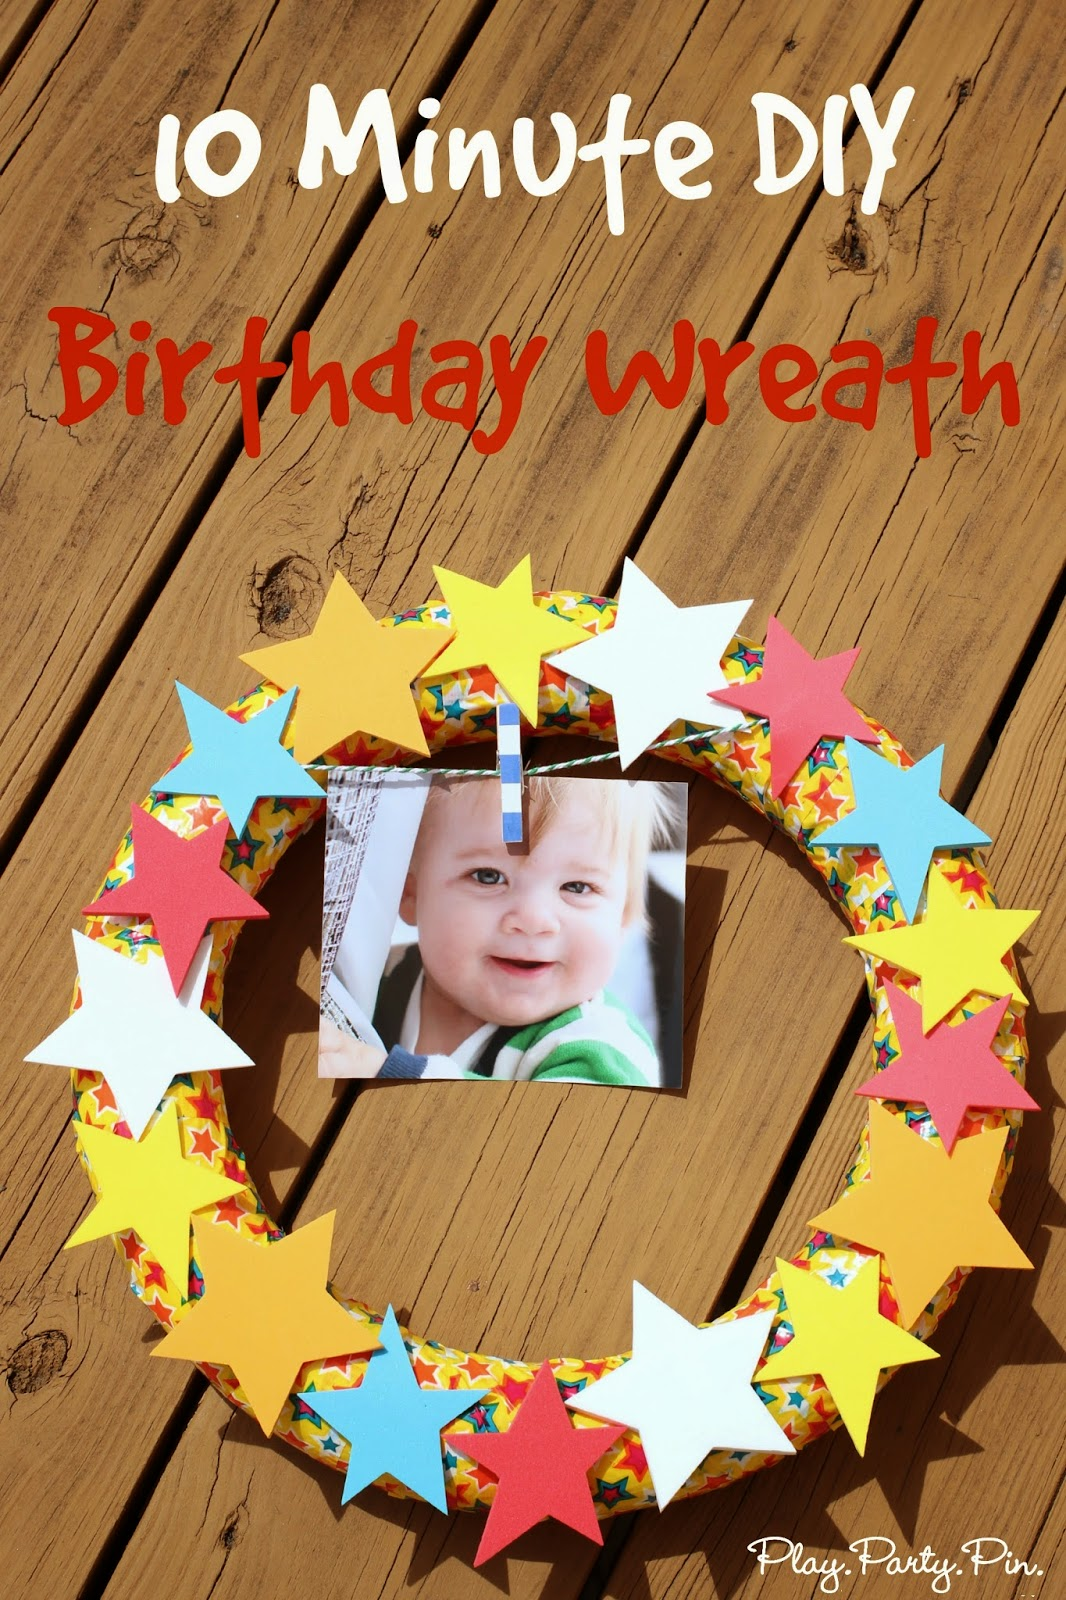 Easy DIY birthday wreath using duct tape and foam shapes